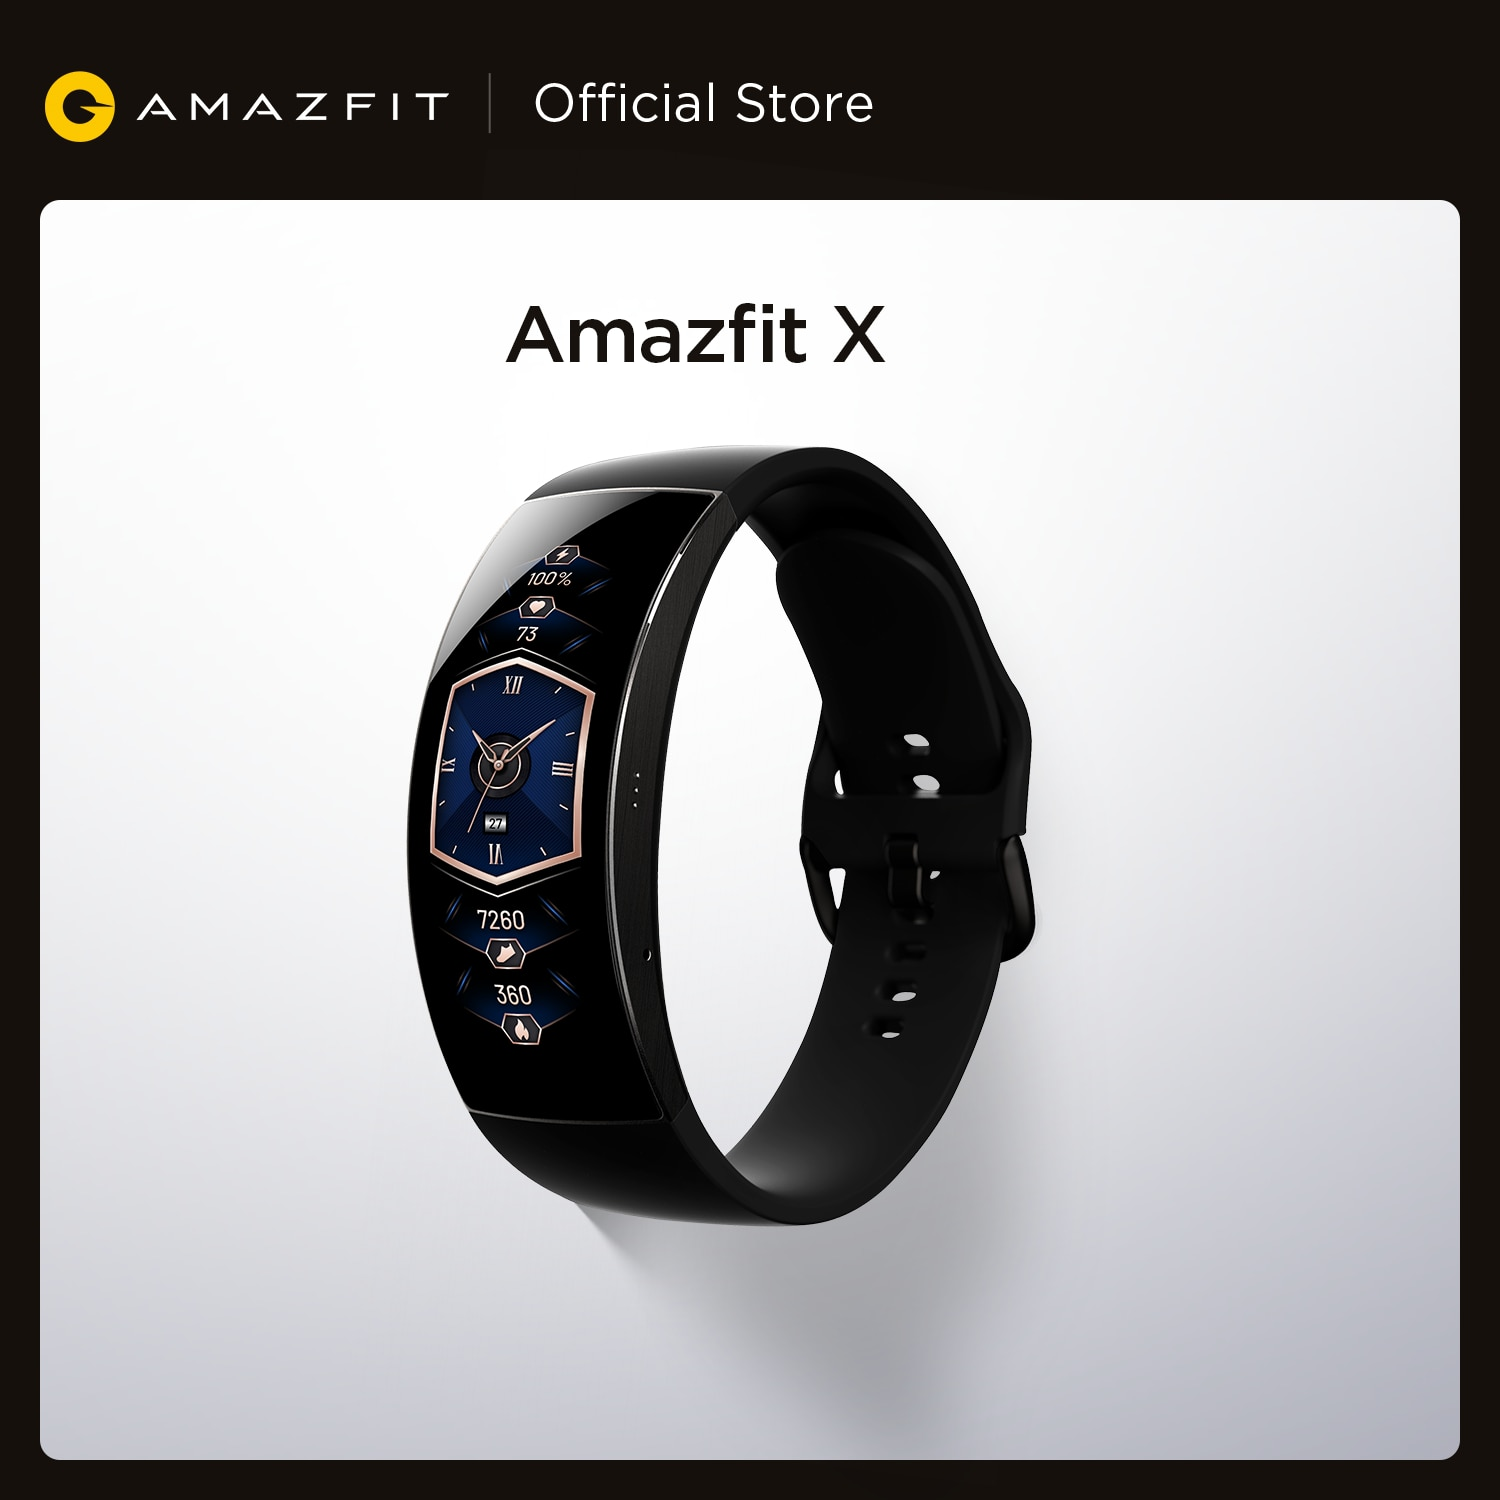 Amazfit X Smartwatch Global Version Curved Screen Titanium Body Sleep Monitoring 5ATM Water Resistant Multi Sports Modes